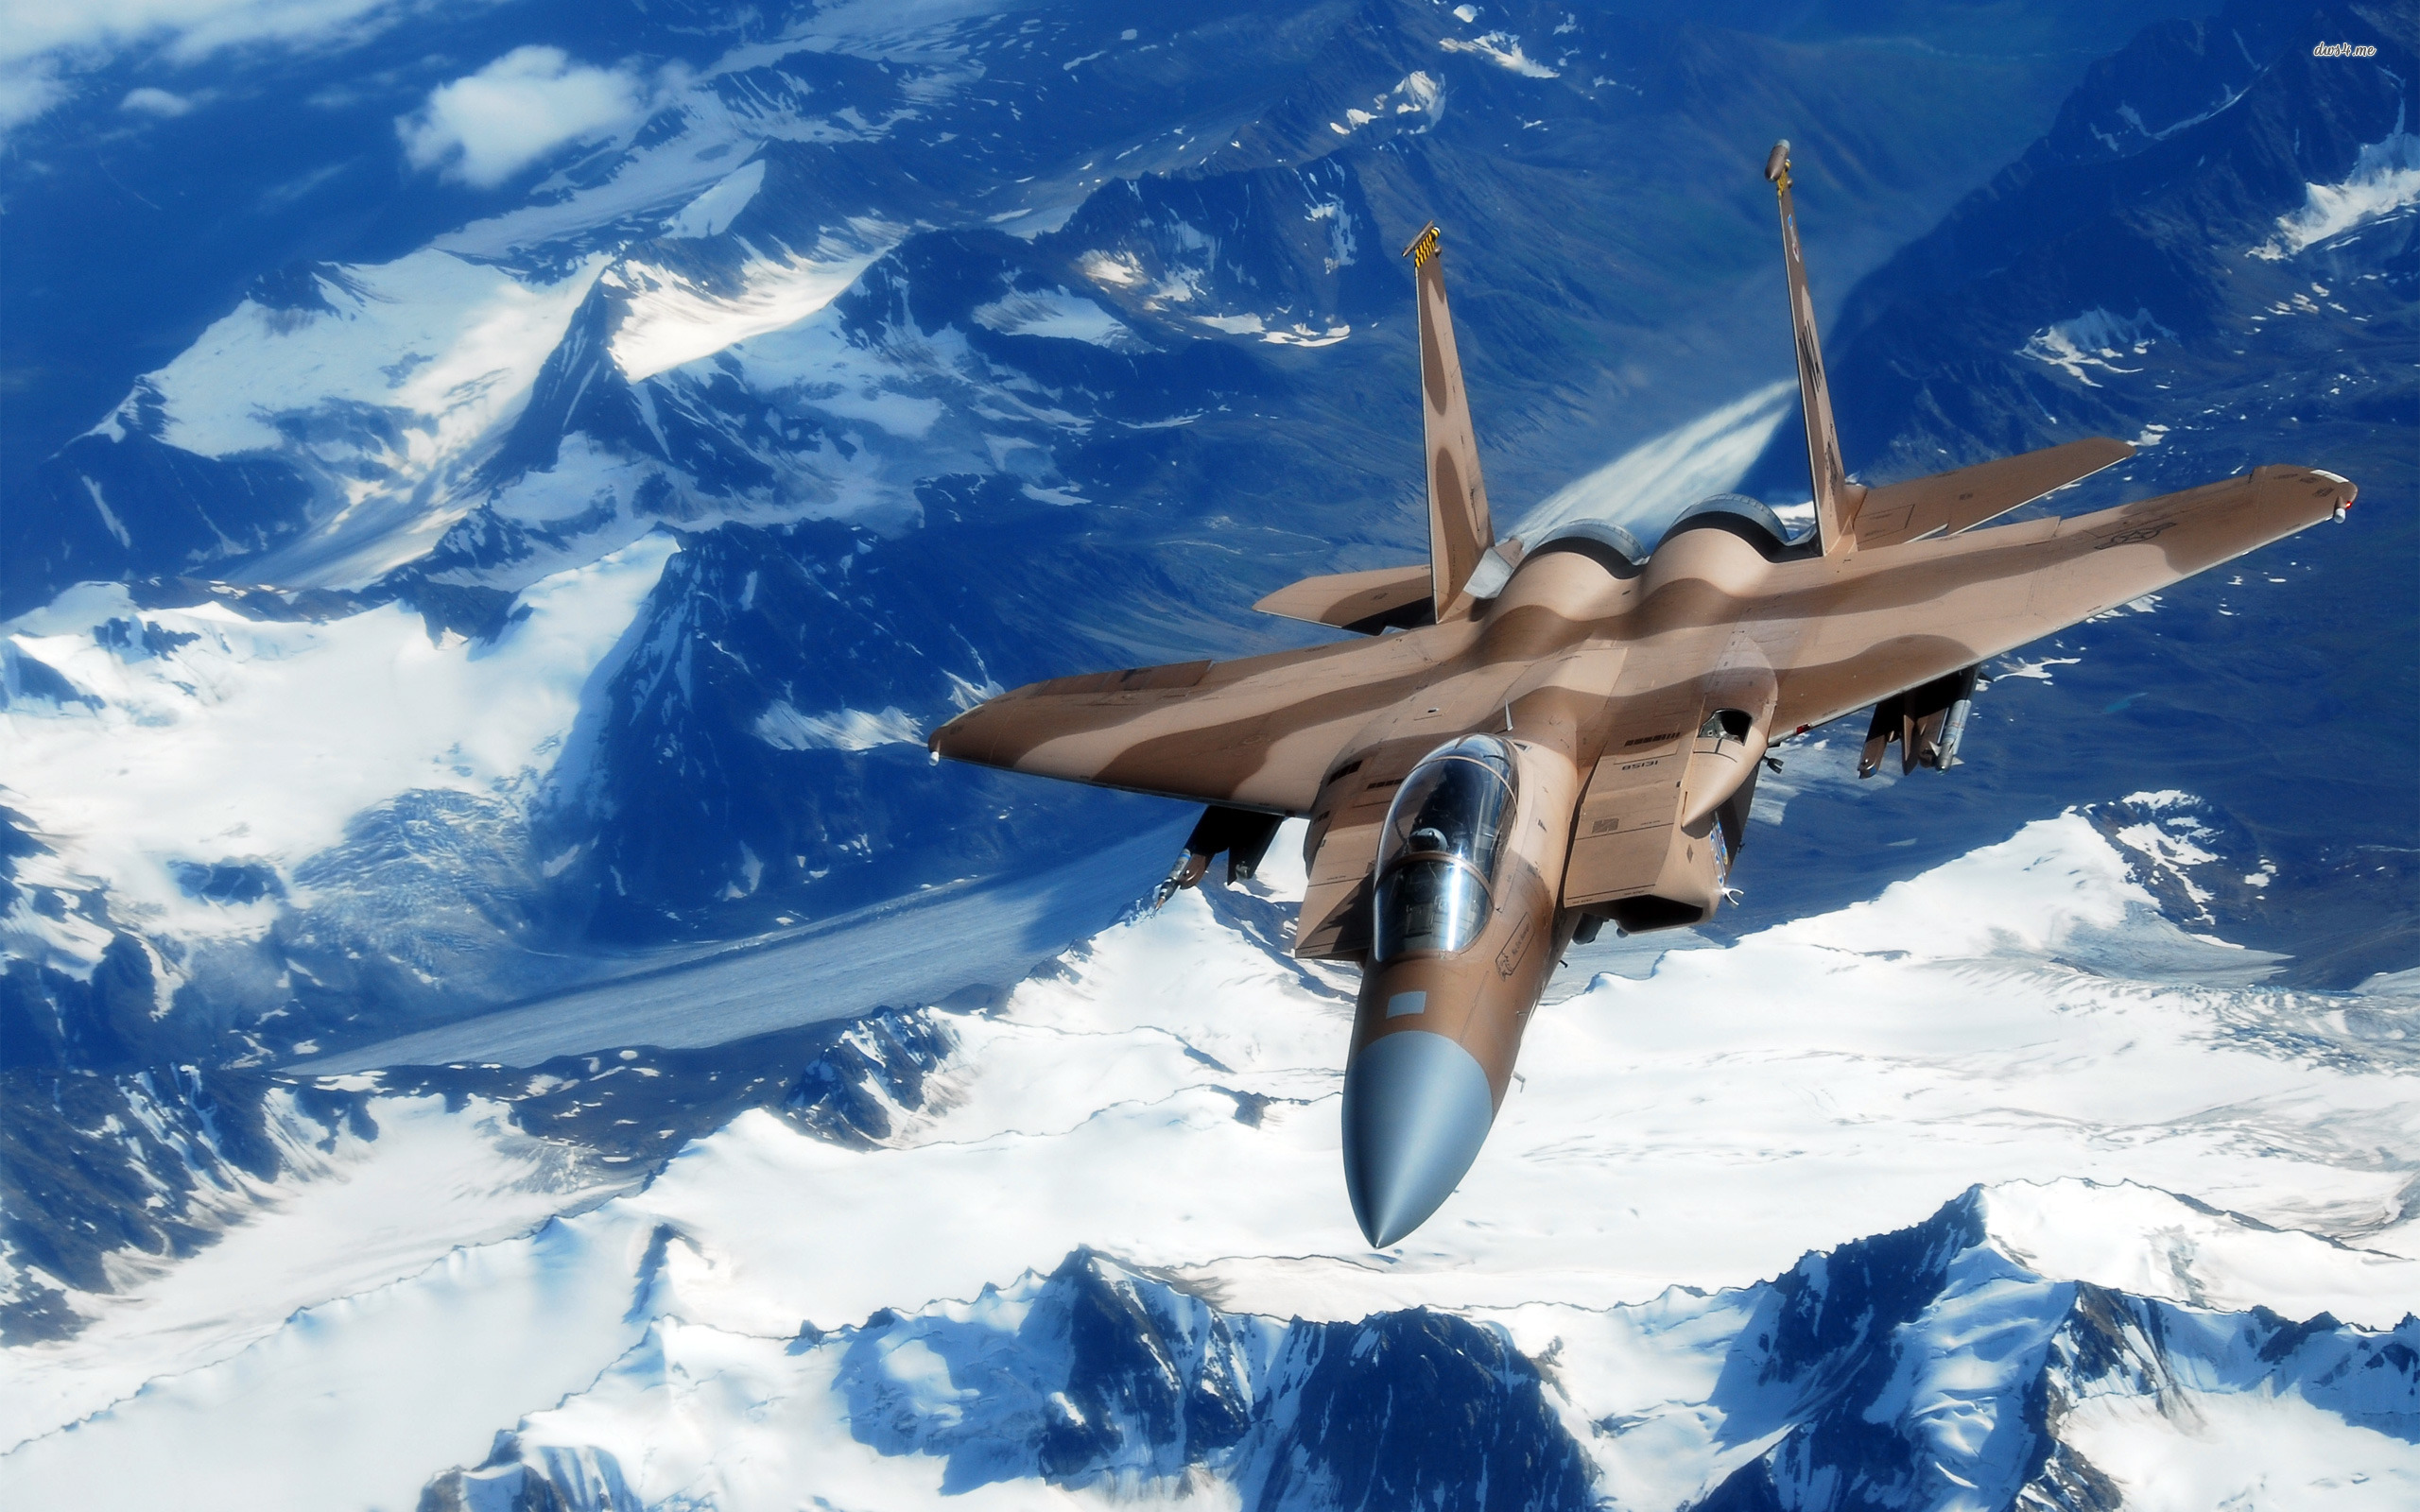 best images about Planes F Eagle on Pinterest Air force